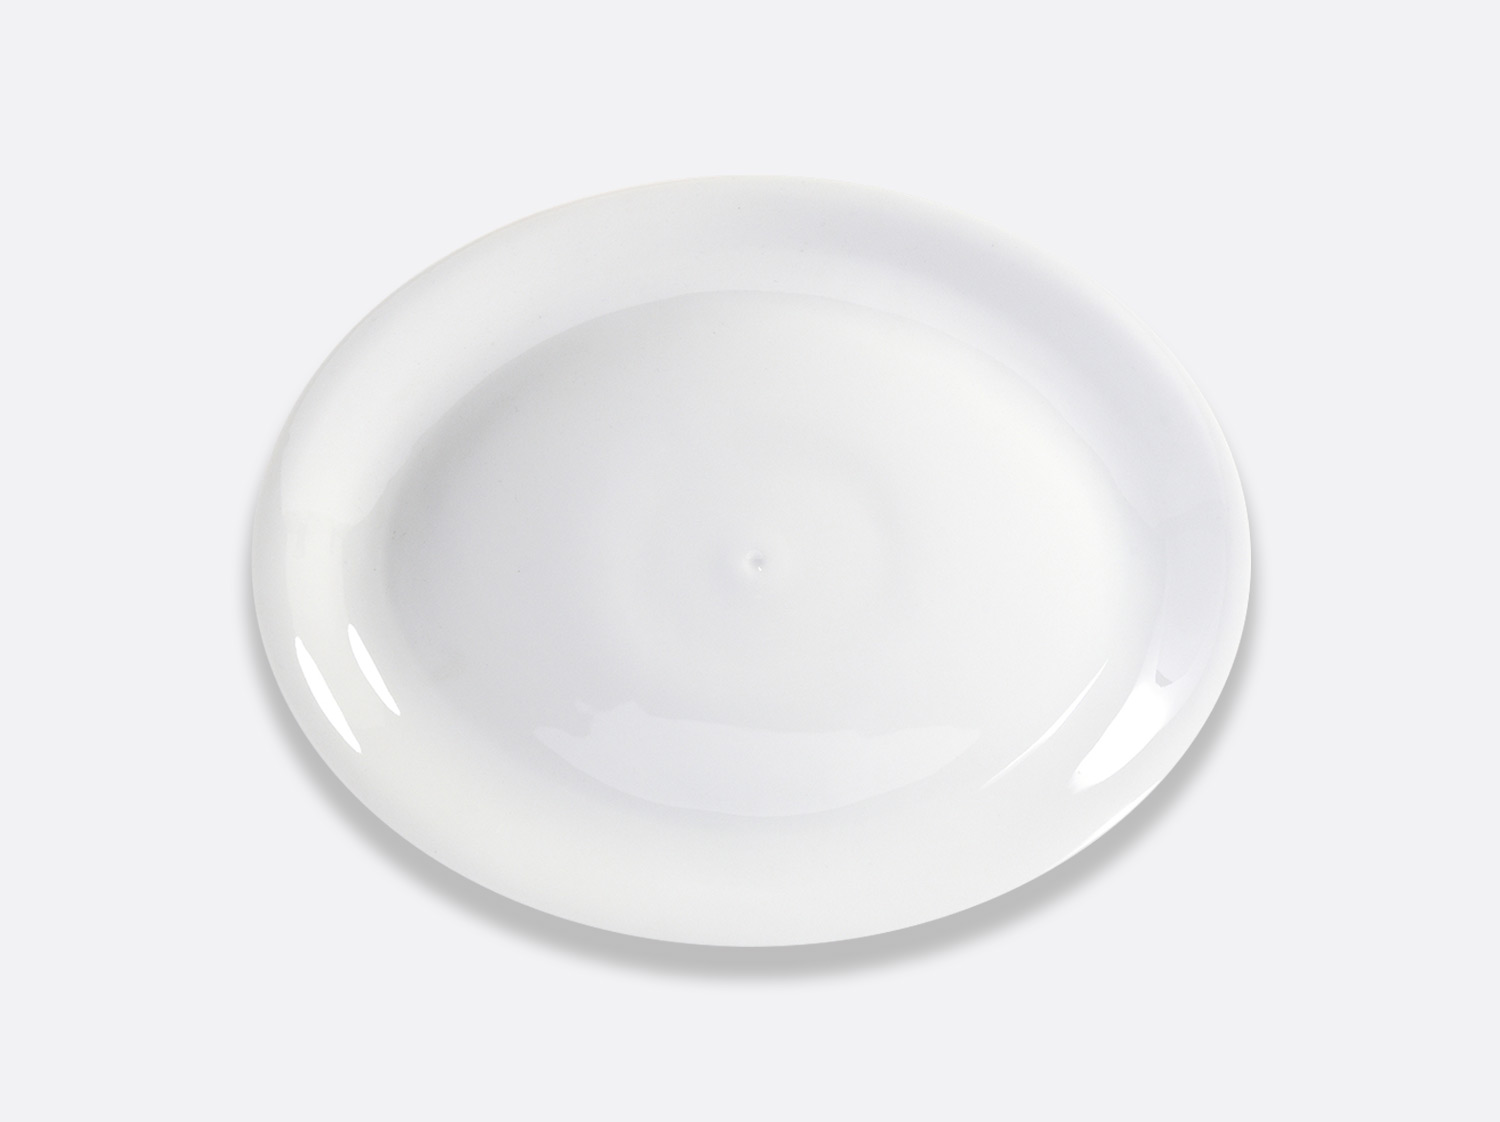 Plat ovale 39 cm en porcelaine de la collection Bulle Bernardaud